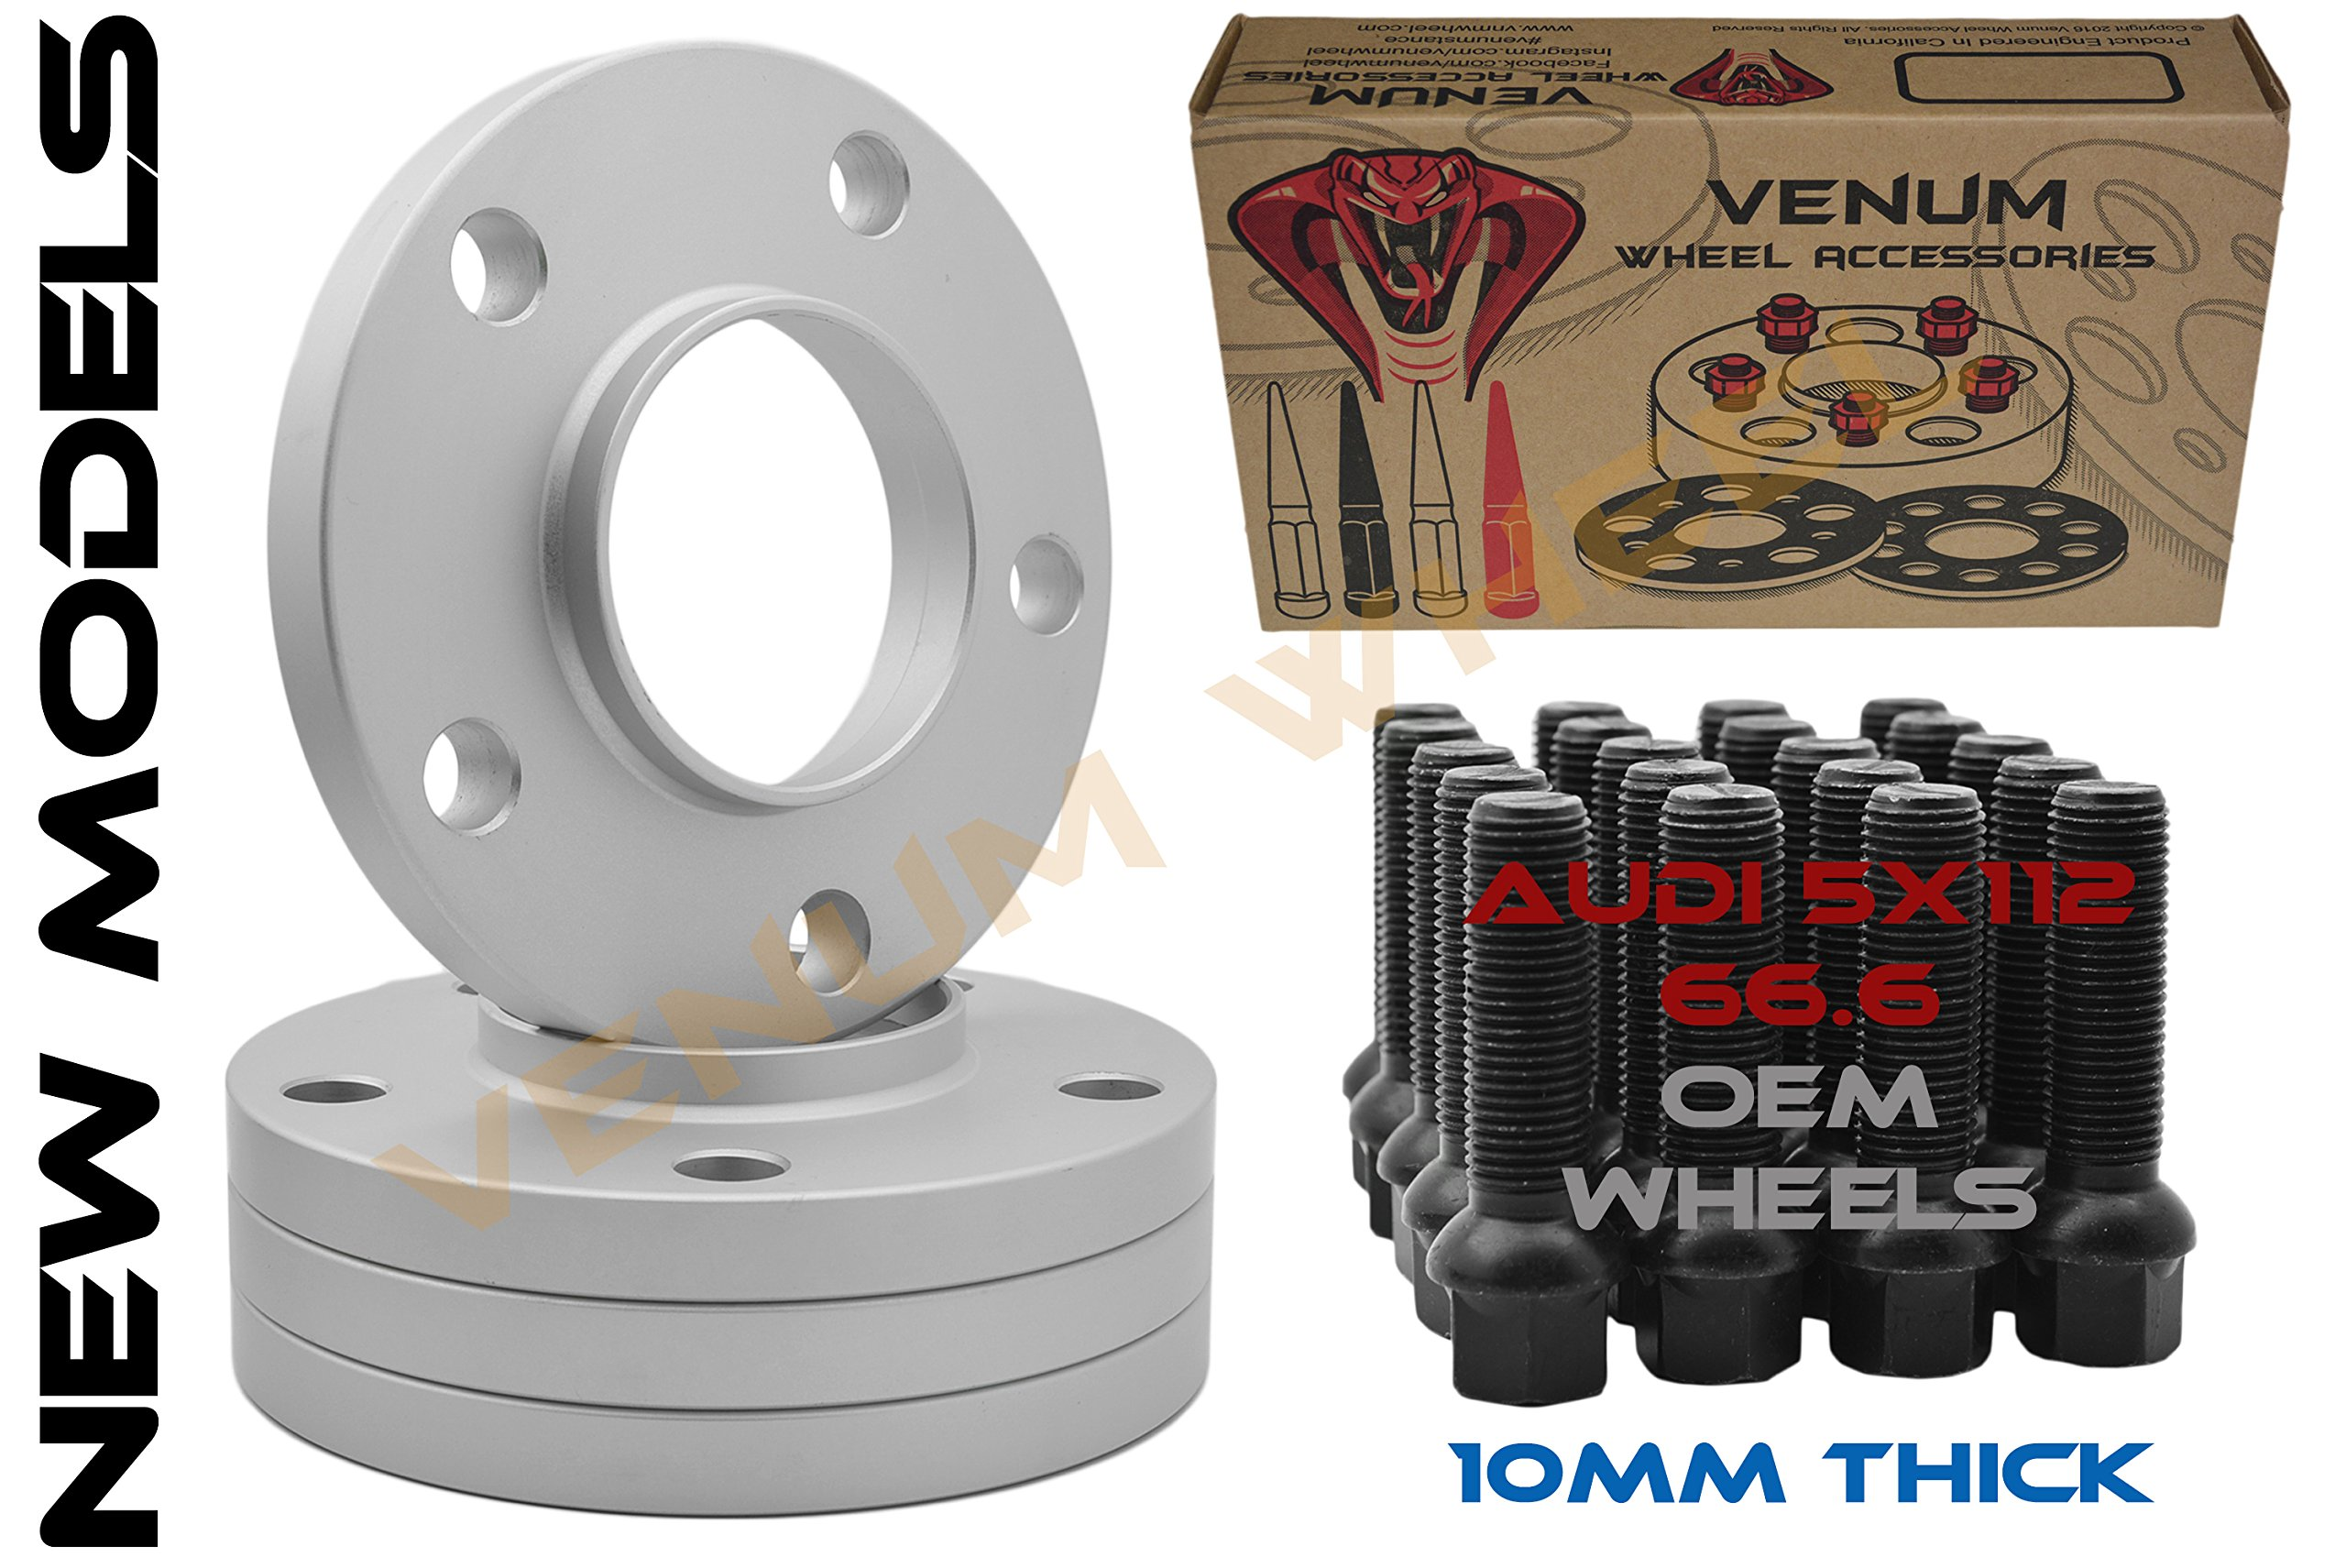 Complete Kit Of Audi | 10 MM Thick | HubCentric Wheel Spacers 5x112 66.56 New Model Audi | Black Ball Seat Lug Bolts 14x1.5 | 2009-2018 A4 A5 A6 A7 A8 All Road S4 S5 S6 S7 RS5 RS7 Q5 SQ5 W/ OEM Wheels